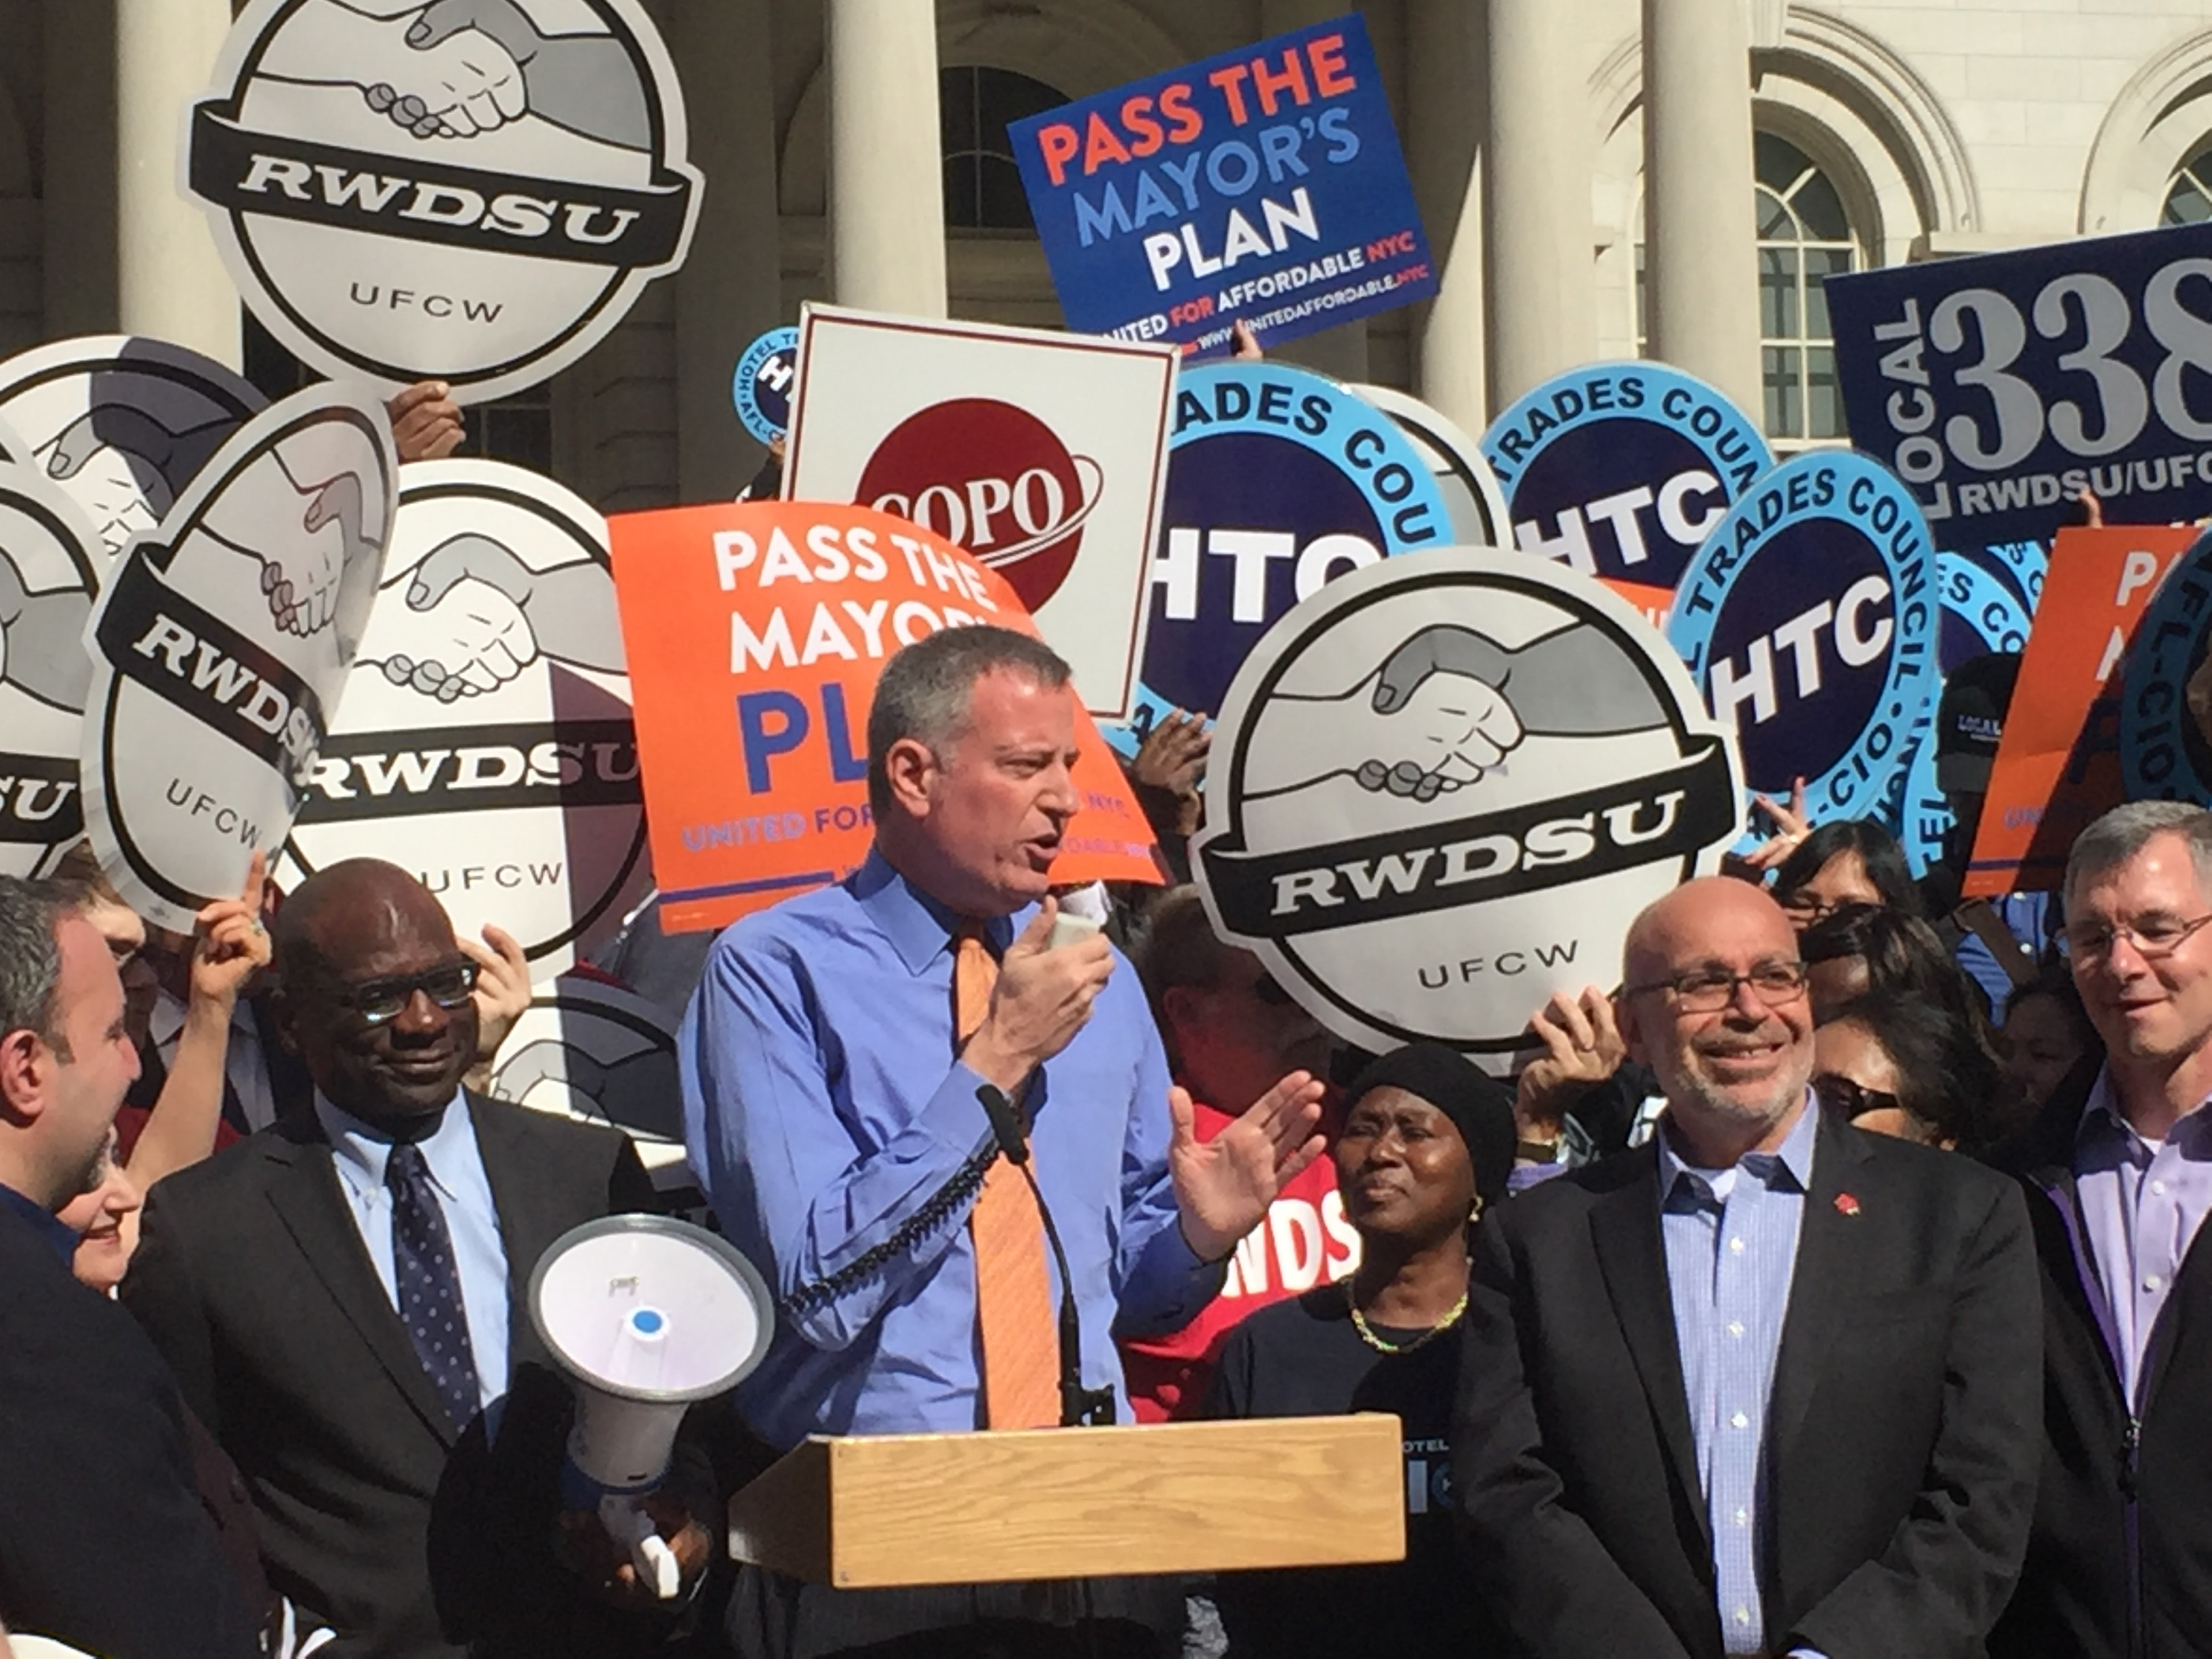 Mayor Bill de Blasio rallies for his affordable housing plan.